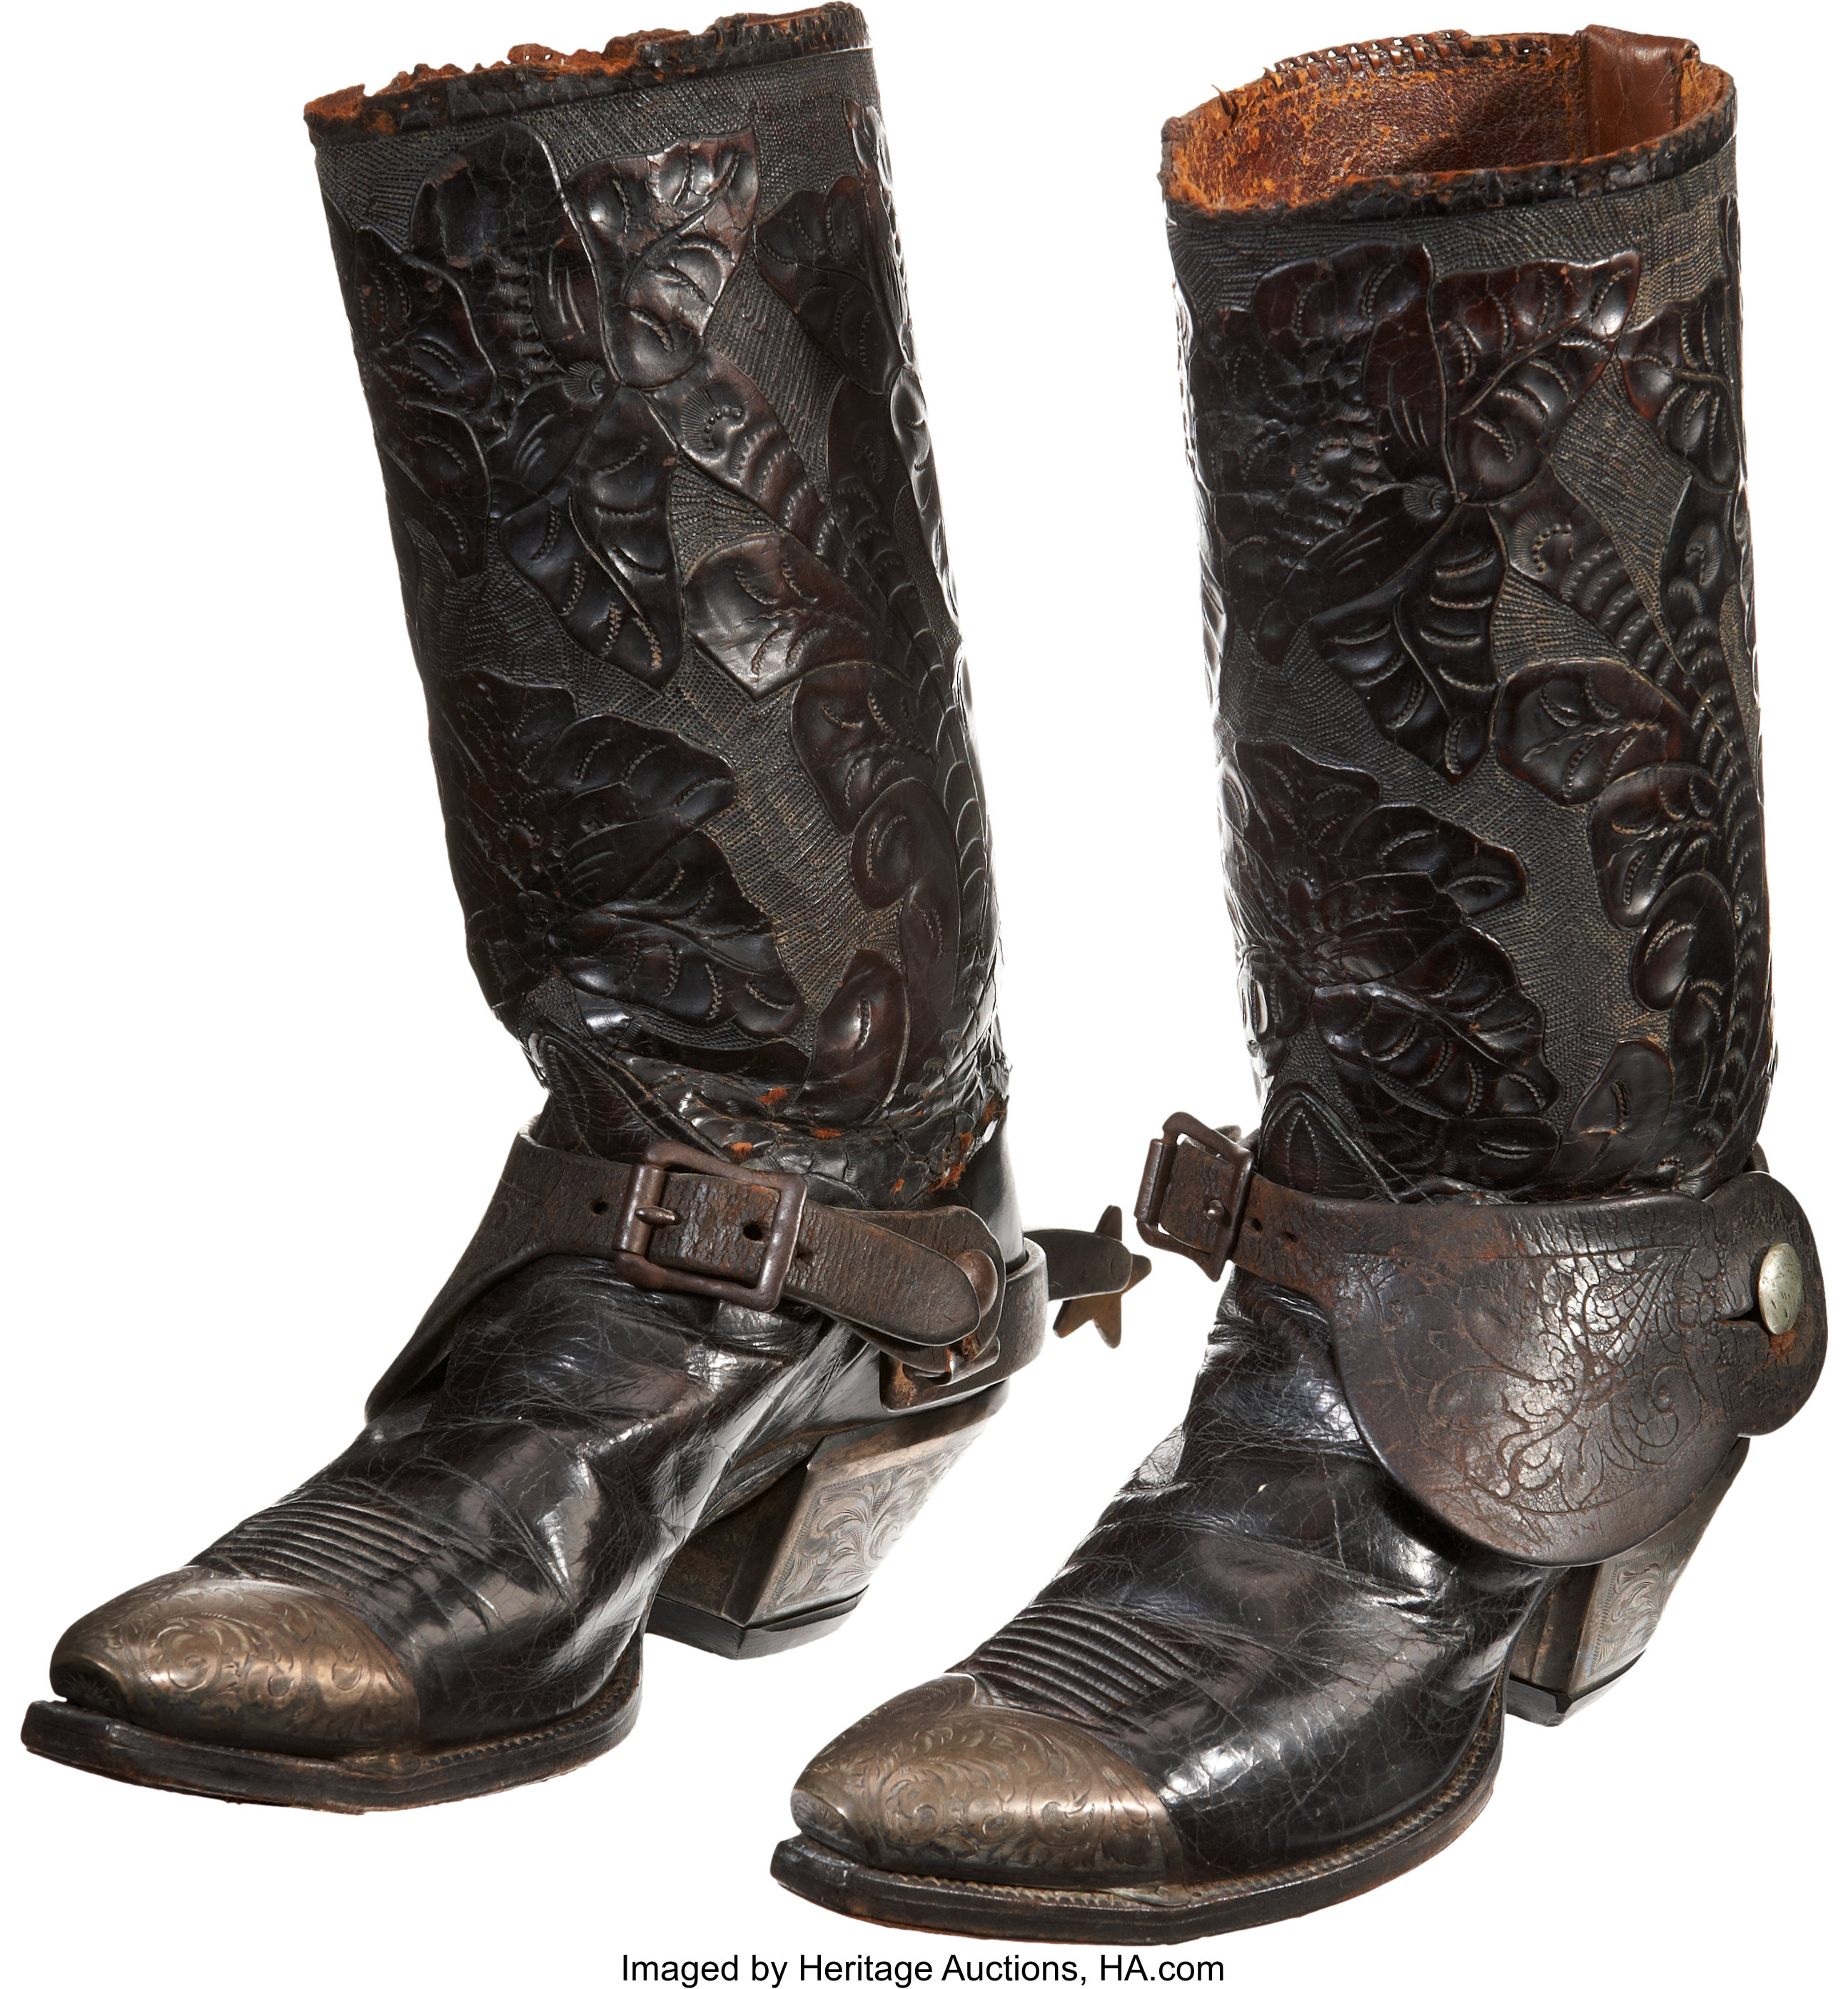 Tooled Leather Cowboy Boots